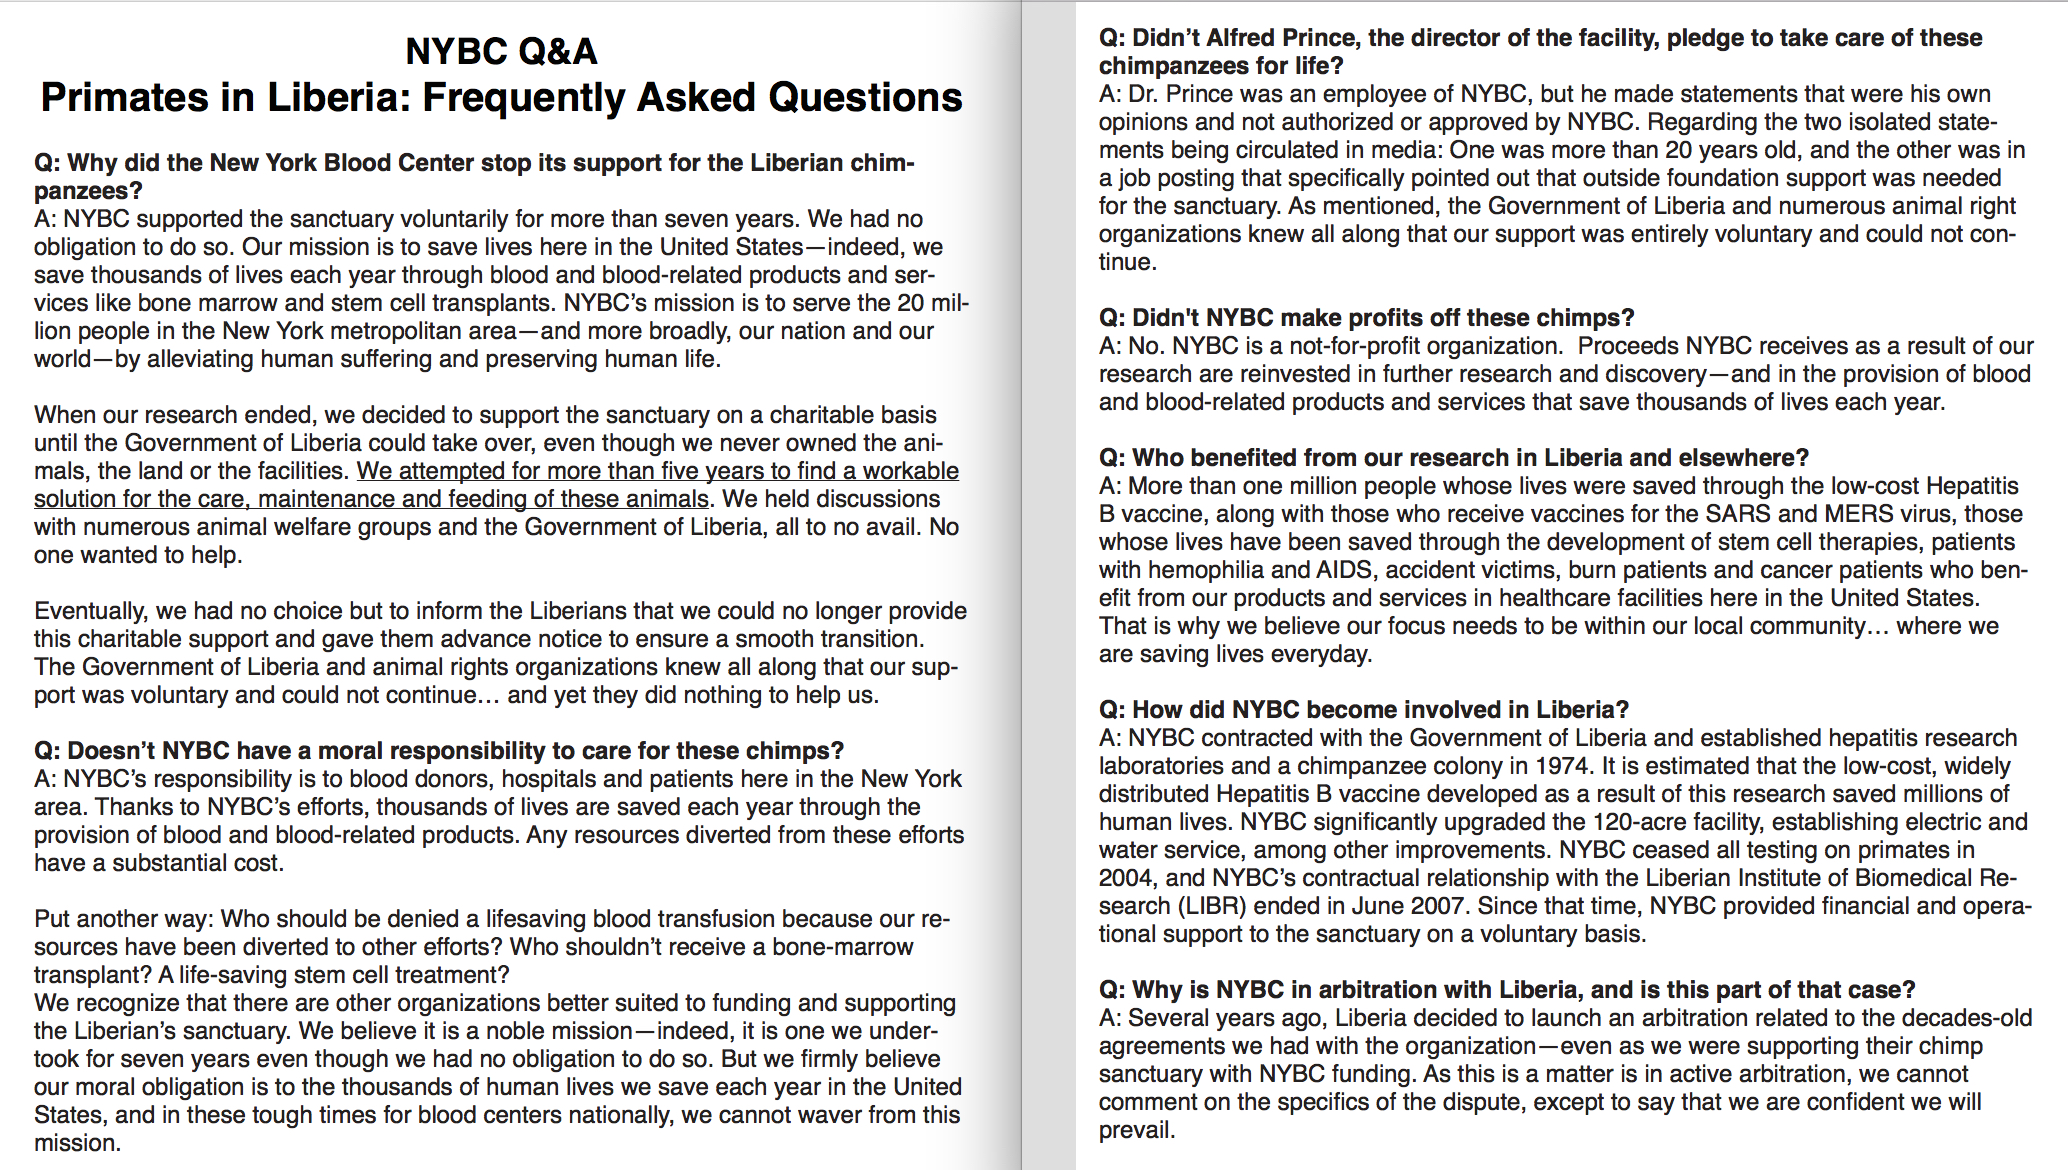 Q&A Posted on NYBC's website on August 6th